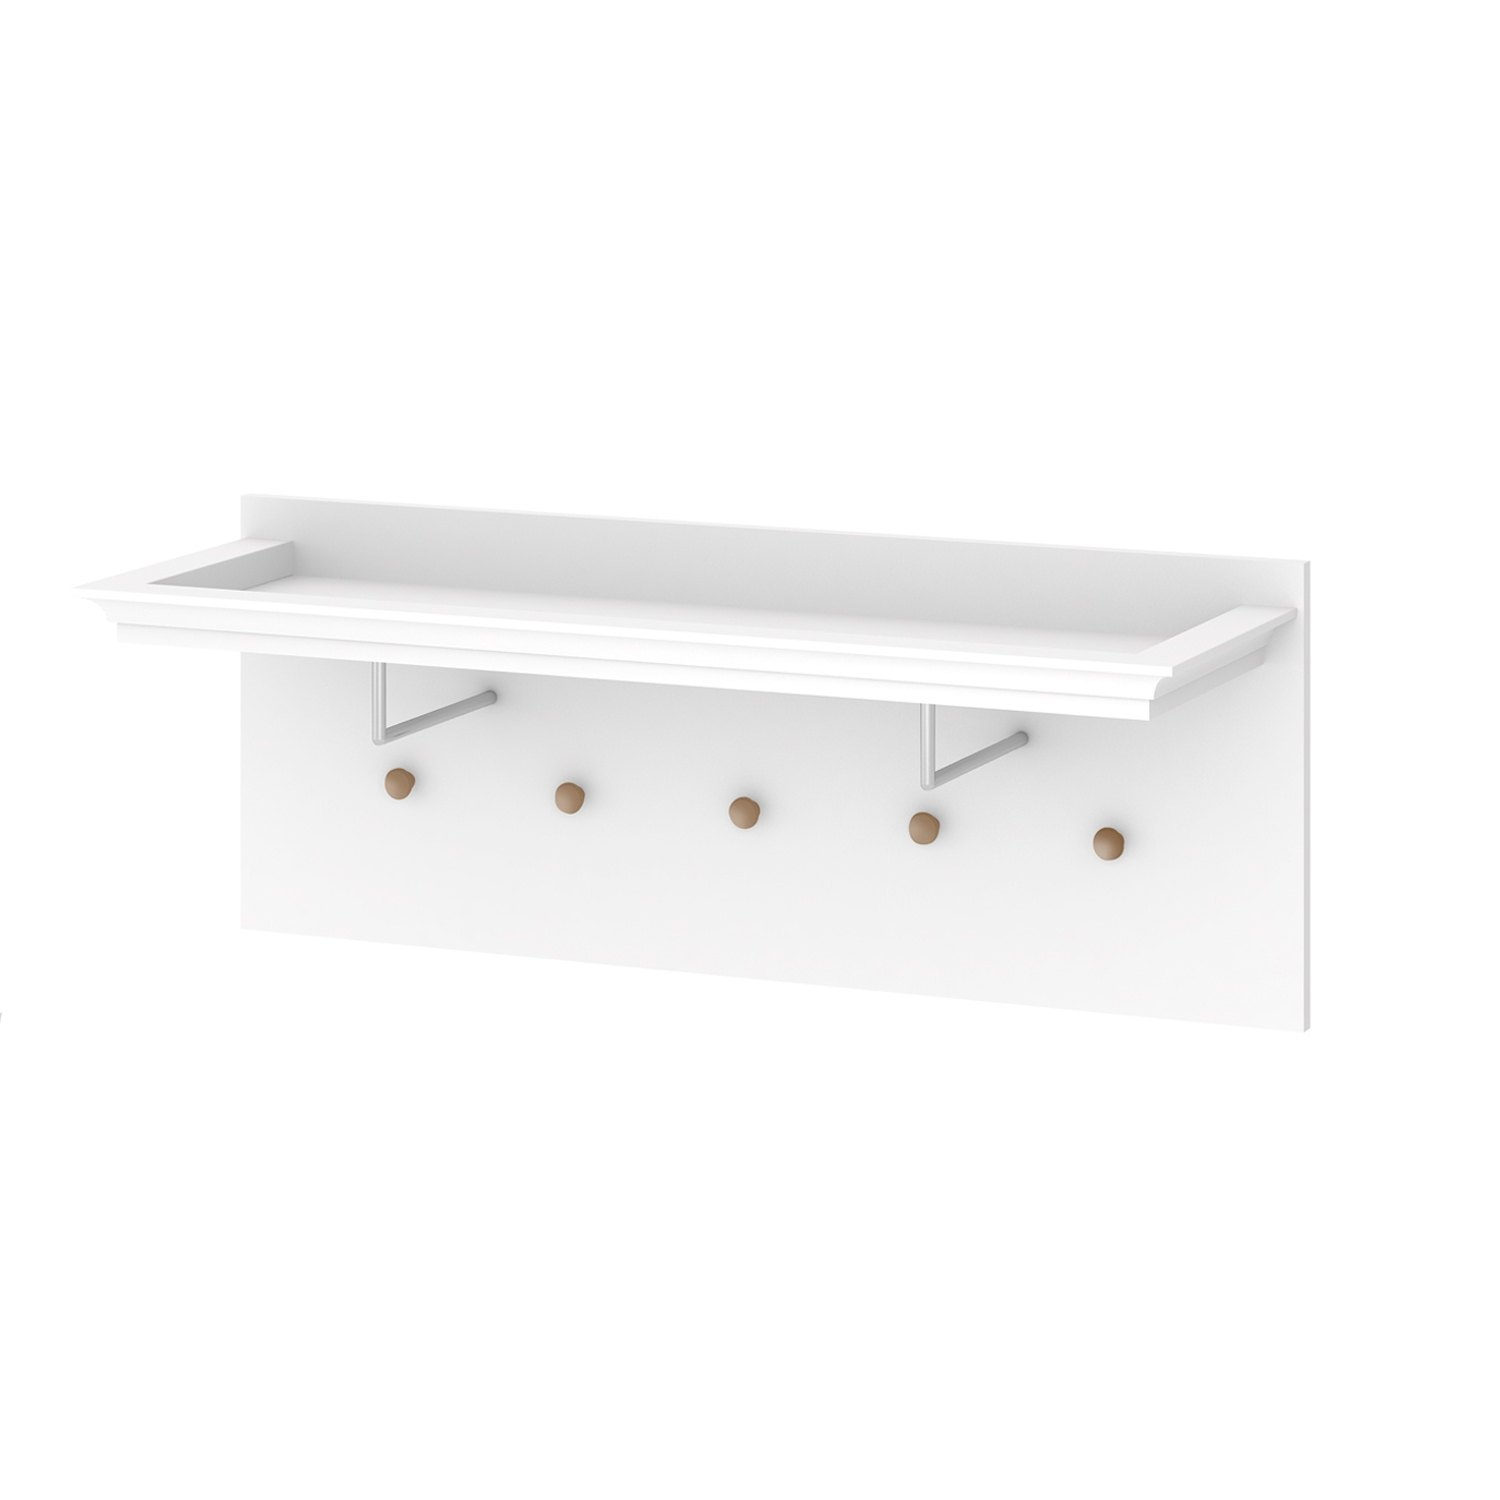 f652dbf69ff Comprar perchero de pared blanco de madera